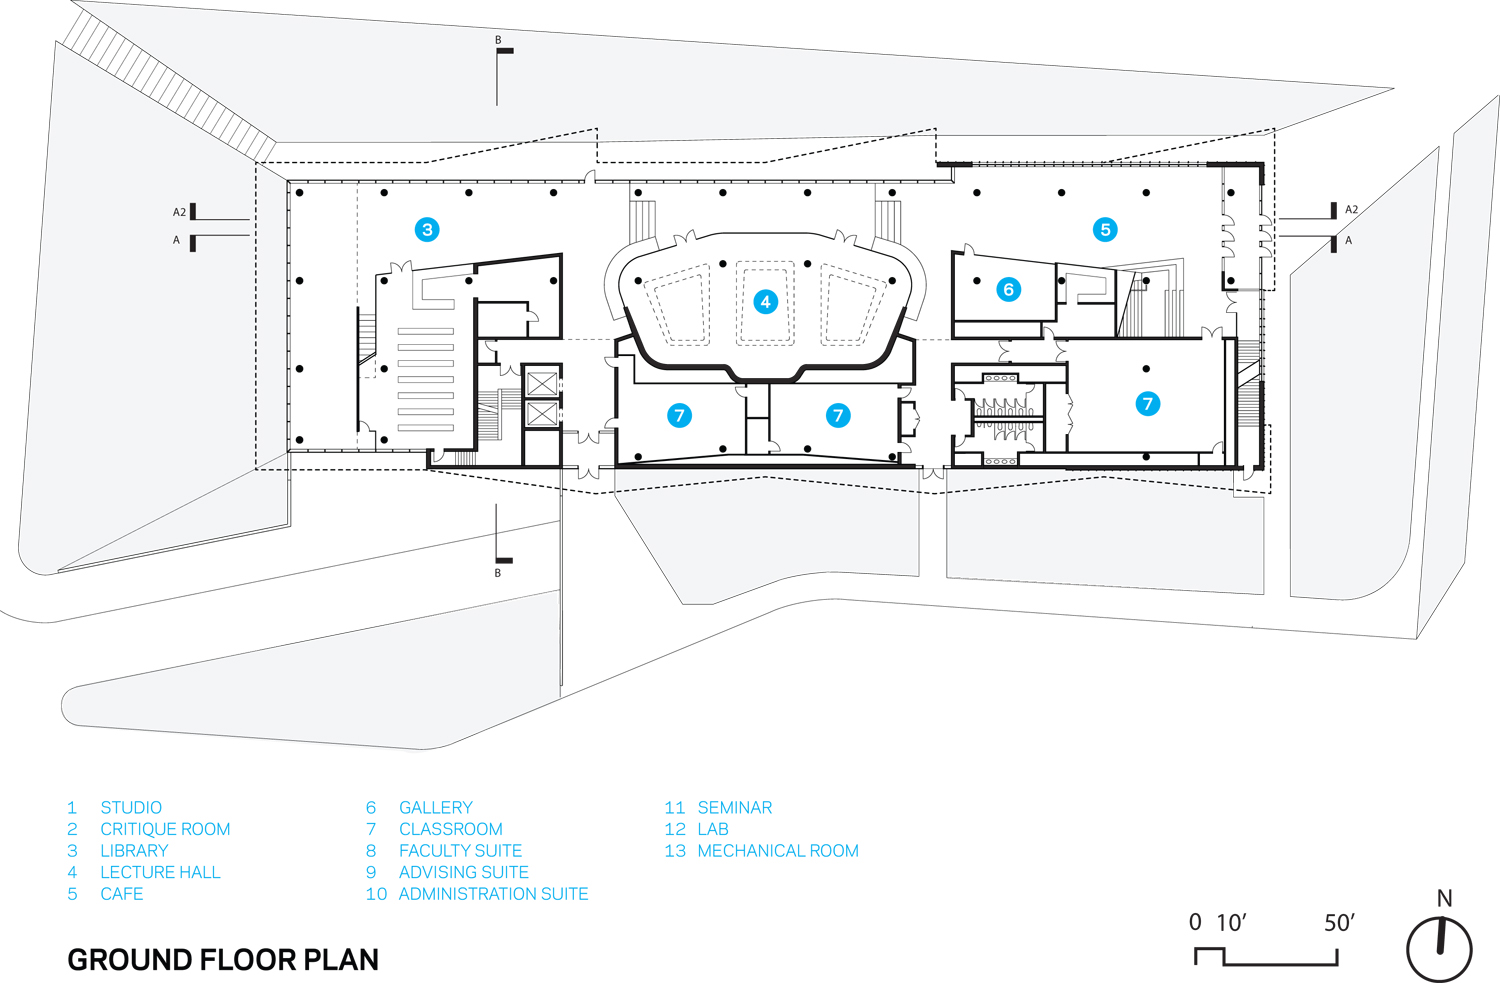 Kent State Center for Architecture and Environmental Design, Ground Floor Floorplan. The groundfloor supports a broad range of spaces including a cafe, gallery, glass-enclosed, multi-purpose lecture hall,  Weiss/Manfredi}